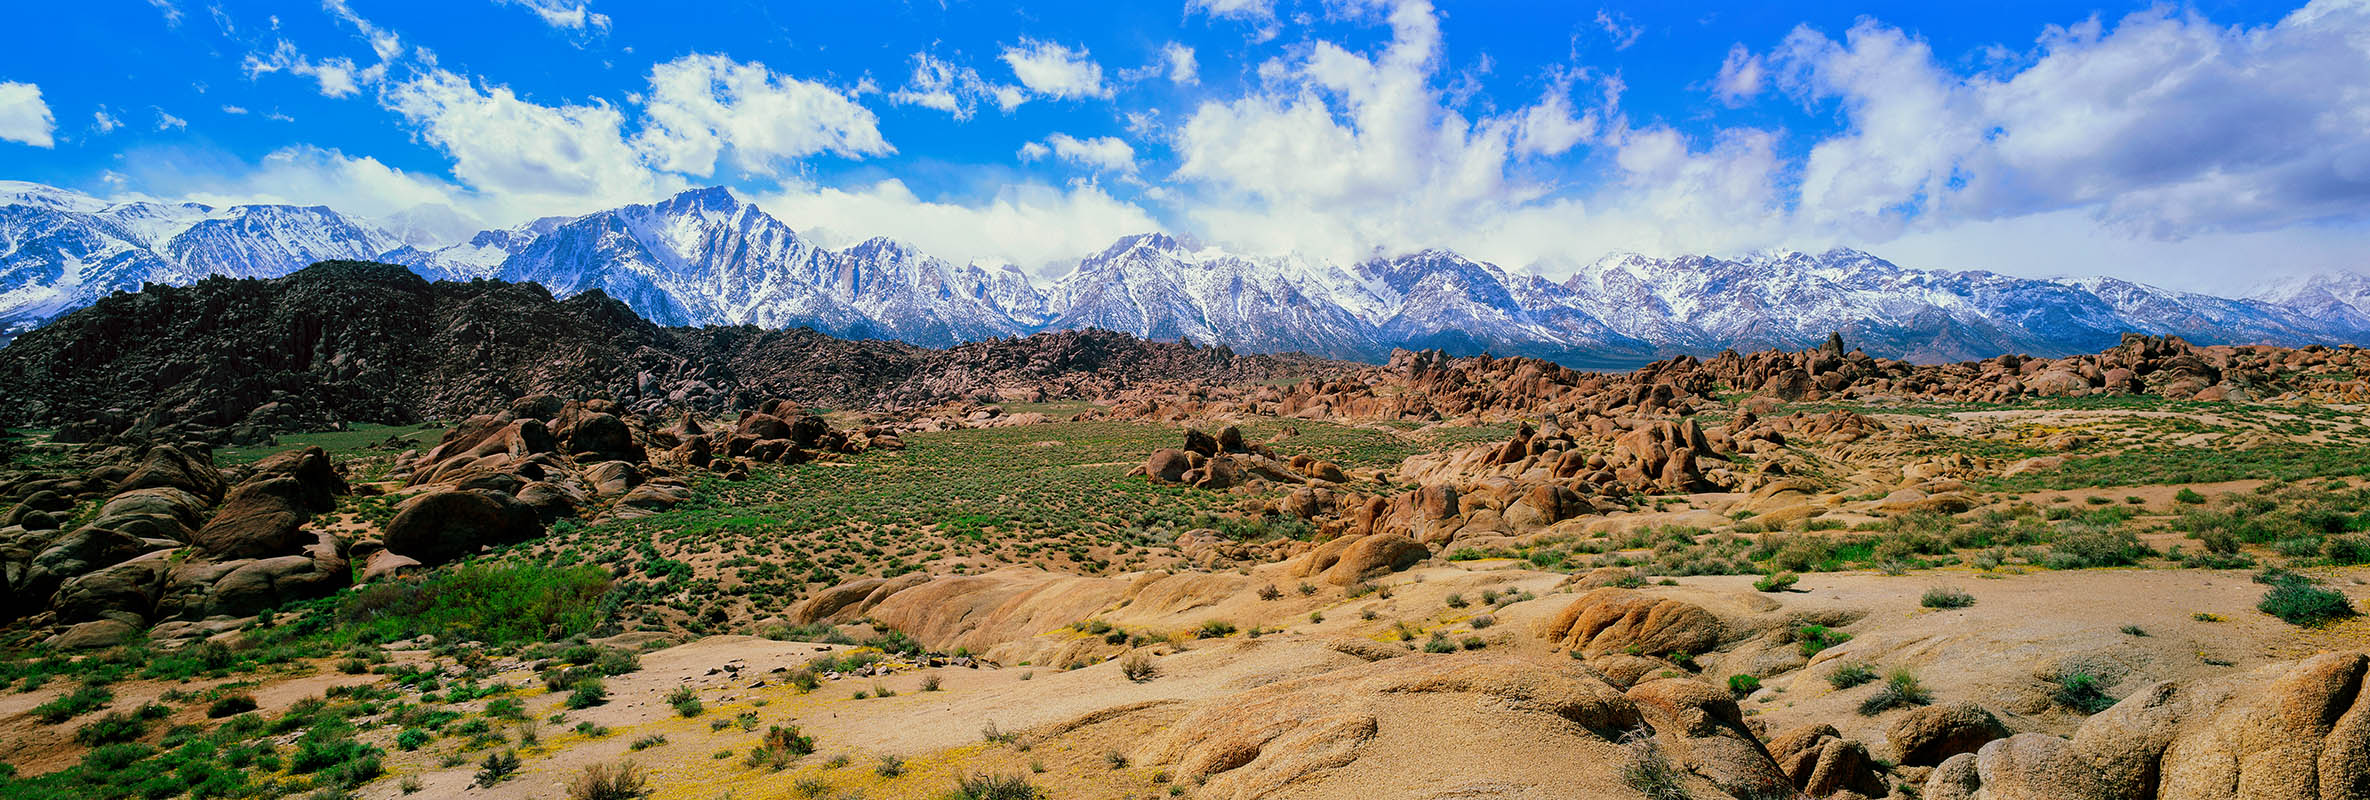 Spring snow on the southern Sierra Nevada as seen from the Alabama Hills.